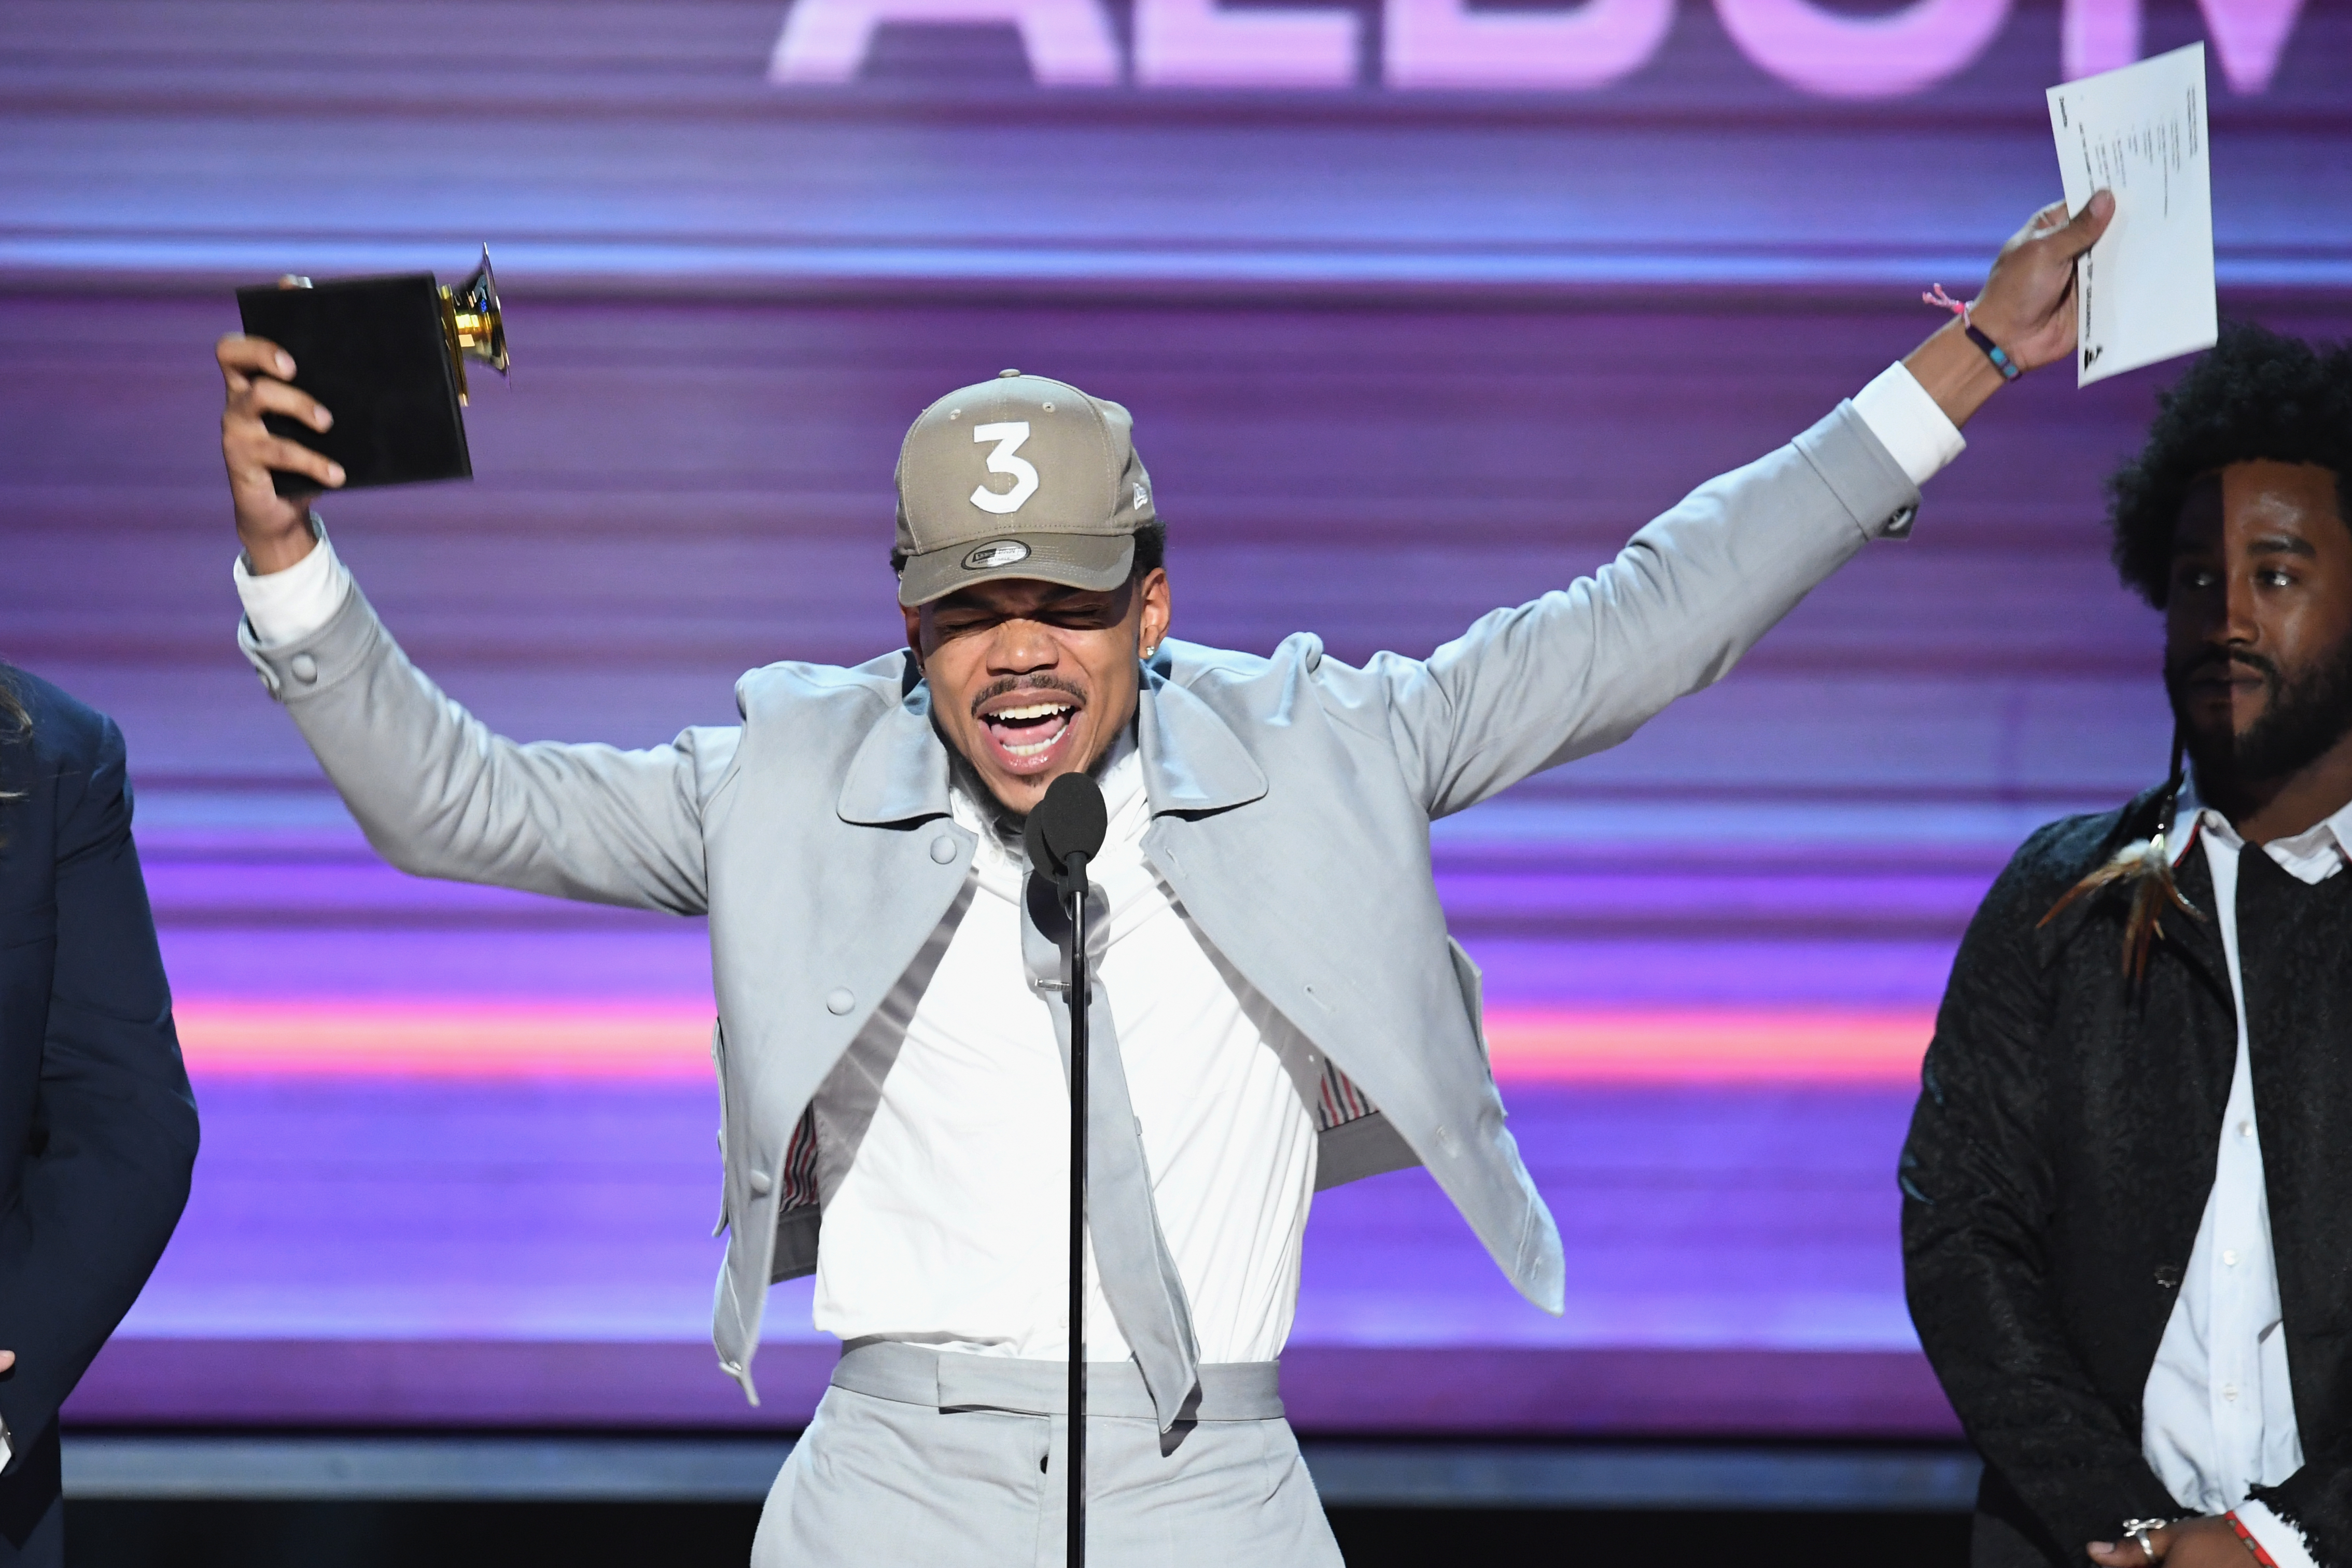 Why Chance The Rapper Shouted Out SoundCloud At Grammys